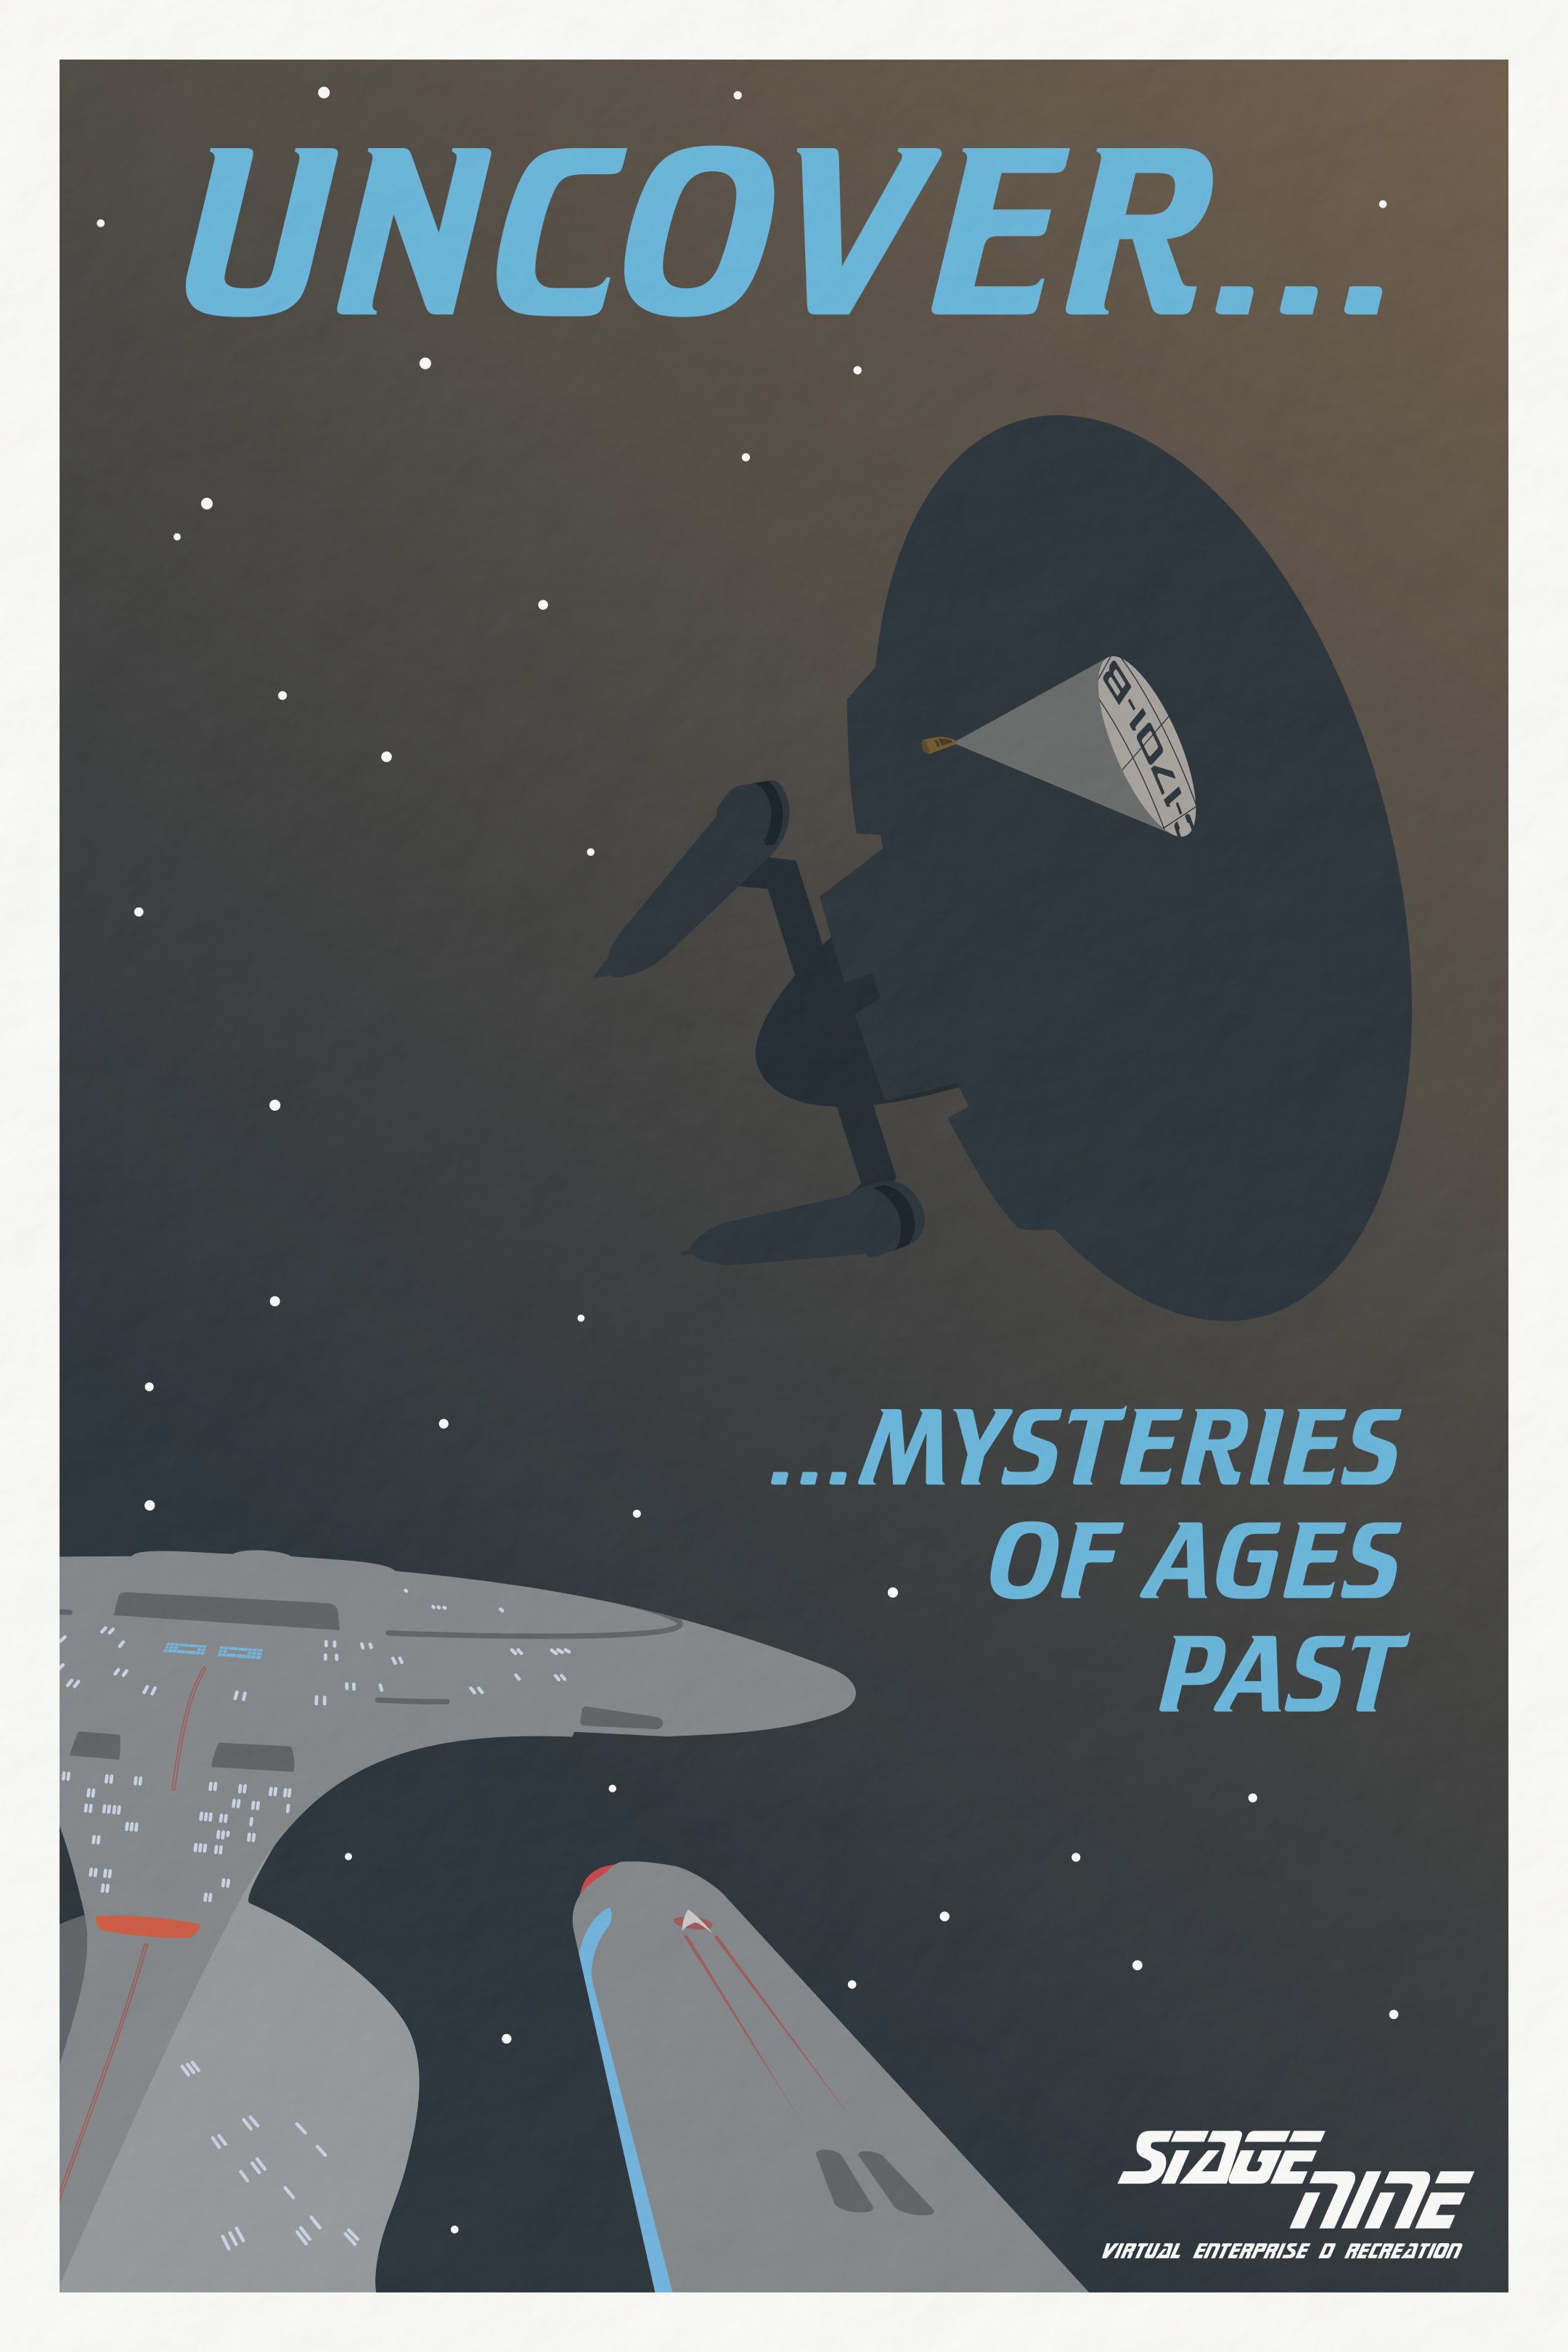 Stage 9 'Uncover' Poster by Rekkert